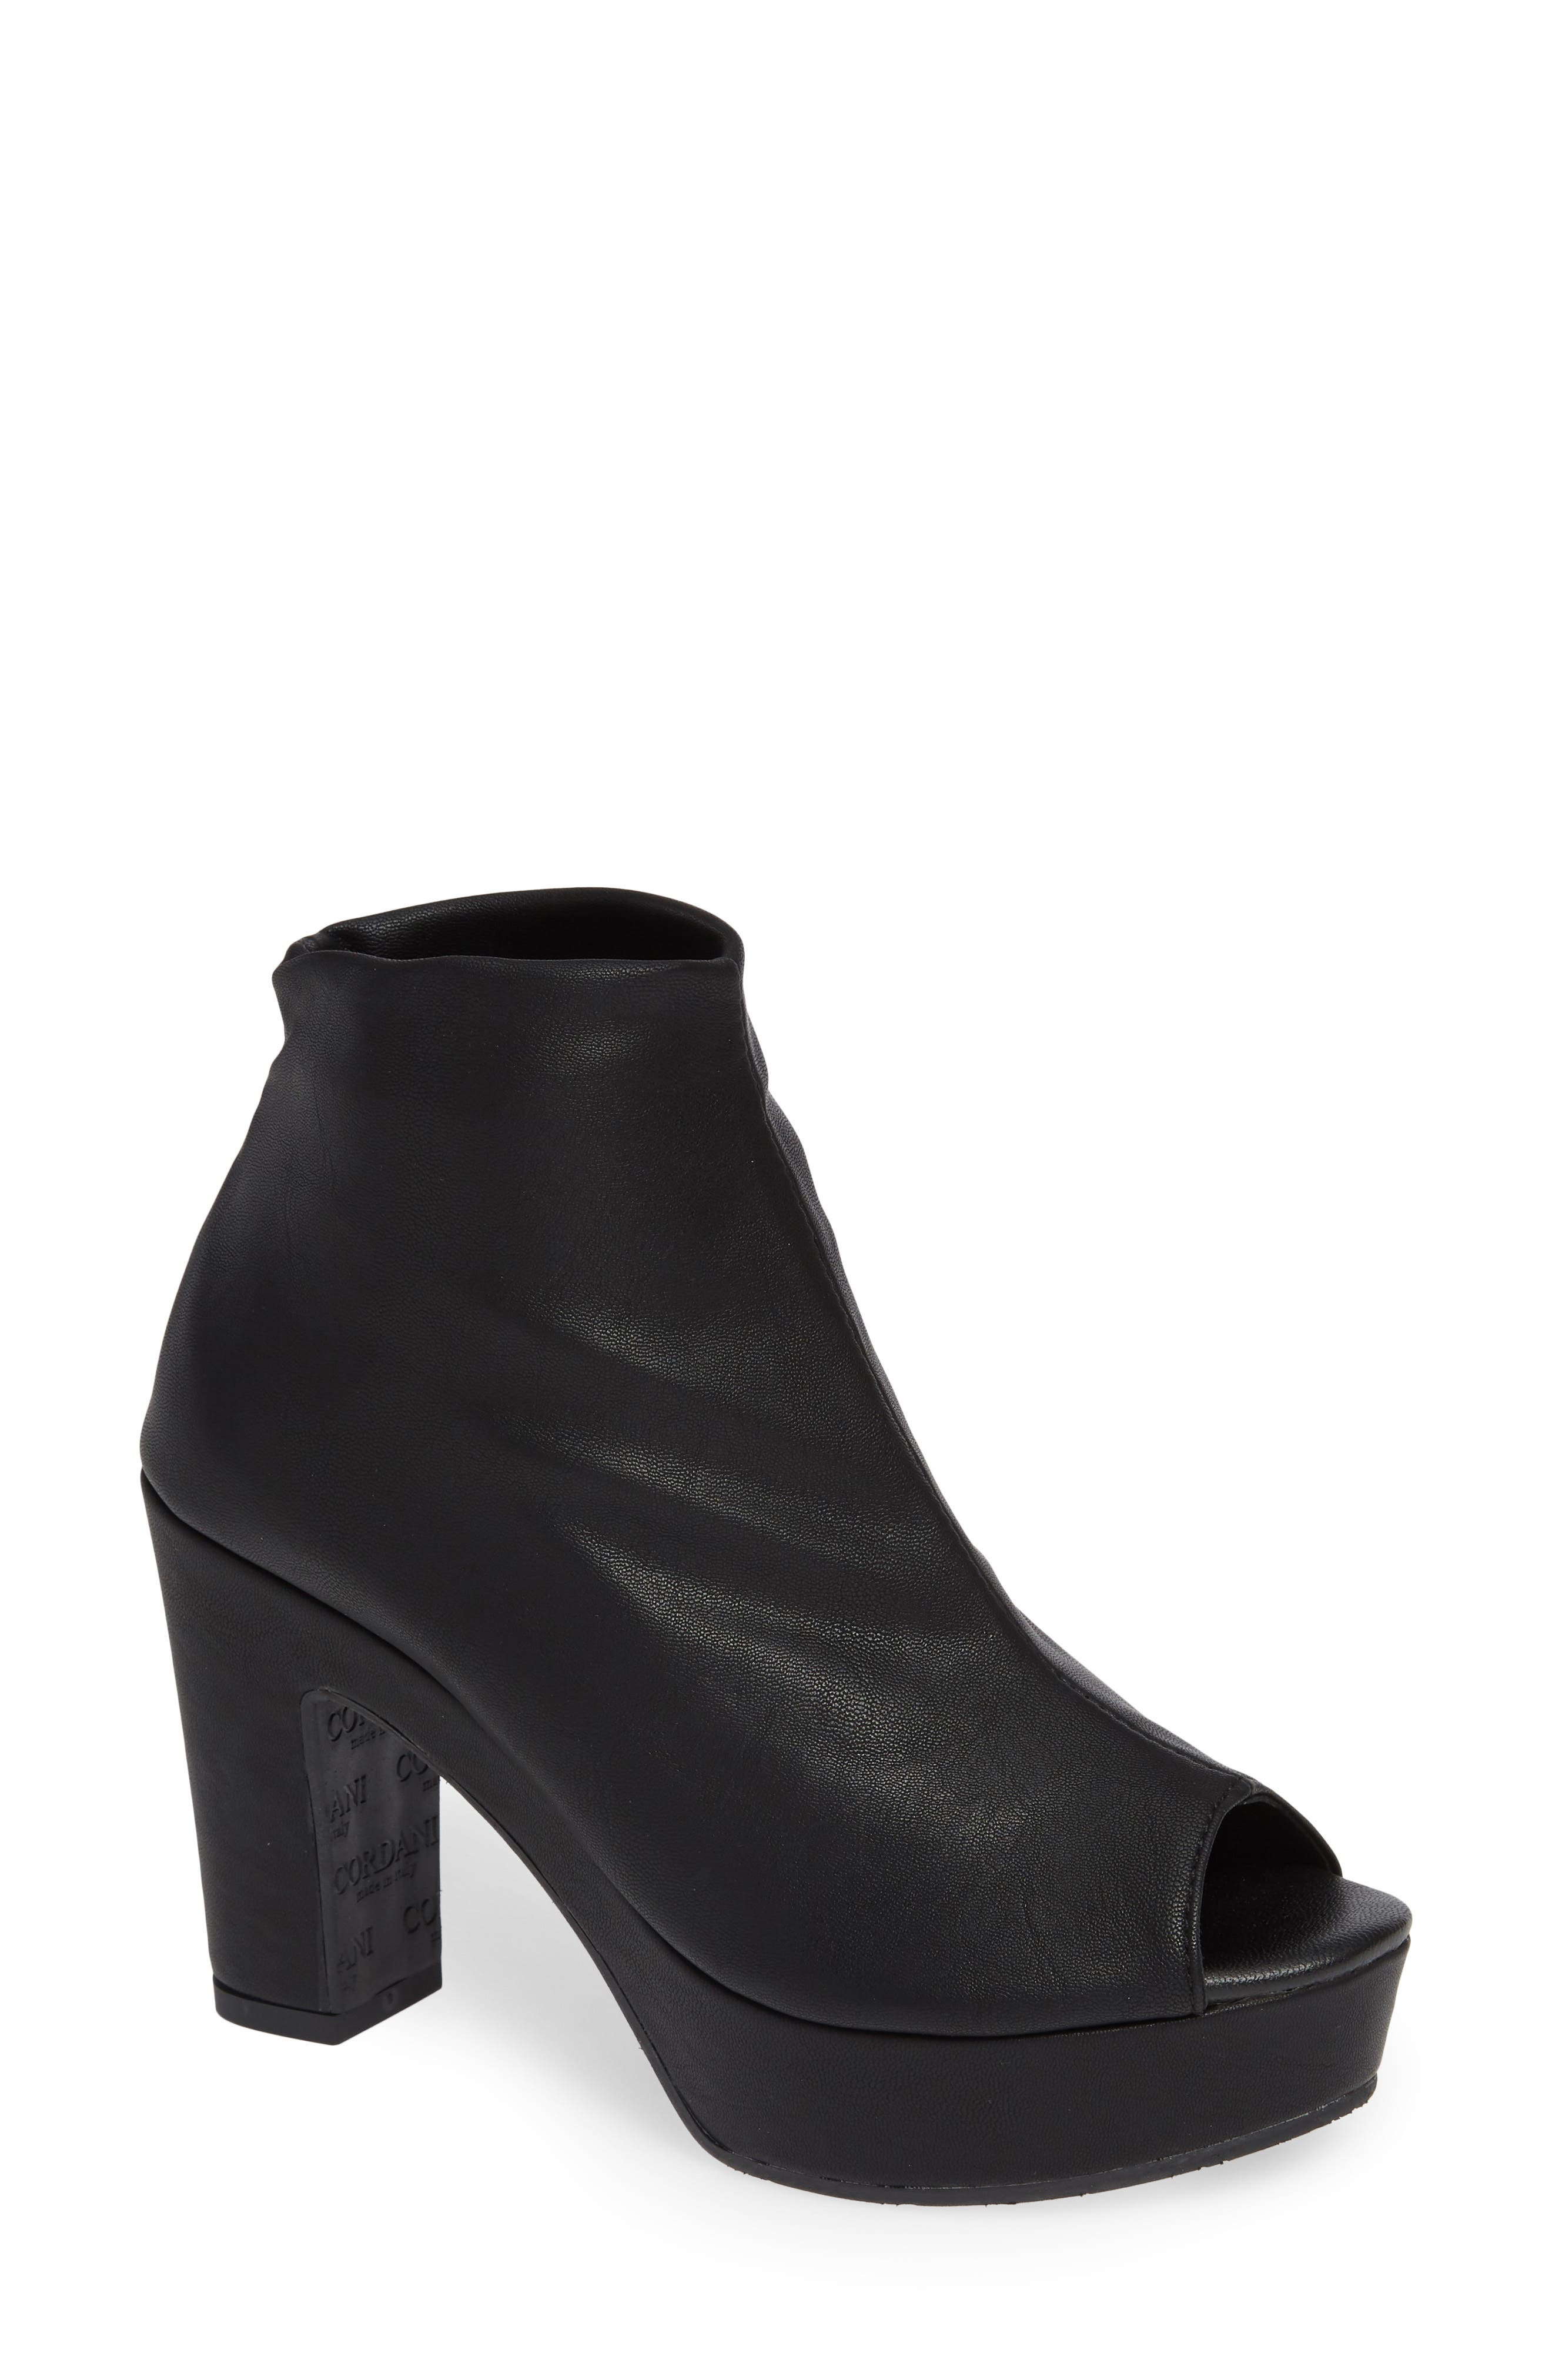 Tyra Peep Toe Platform Bootie,                         Main,                         color, BLACK FABRIC